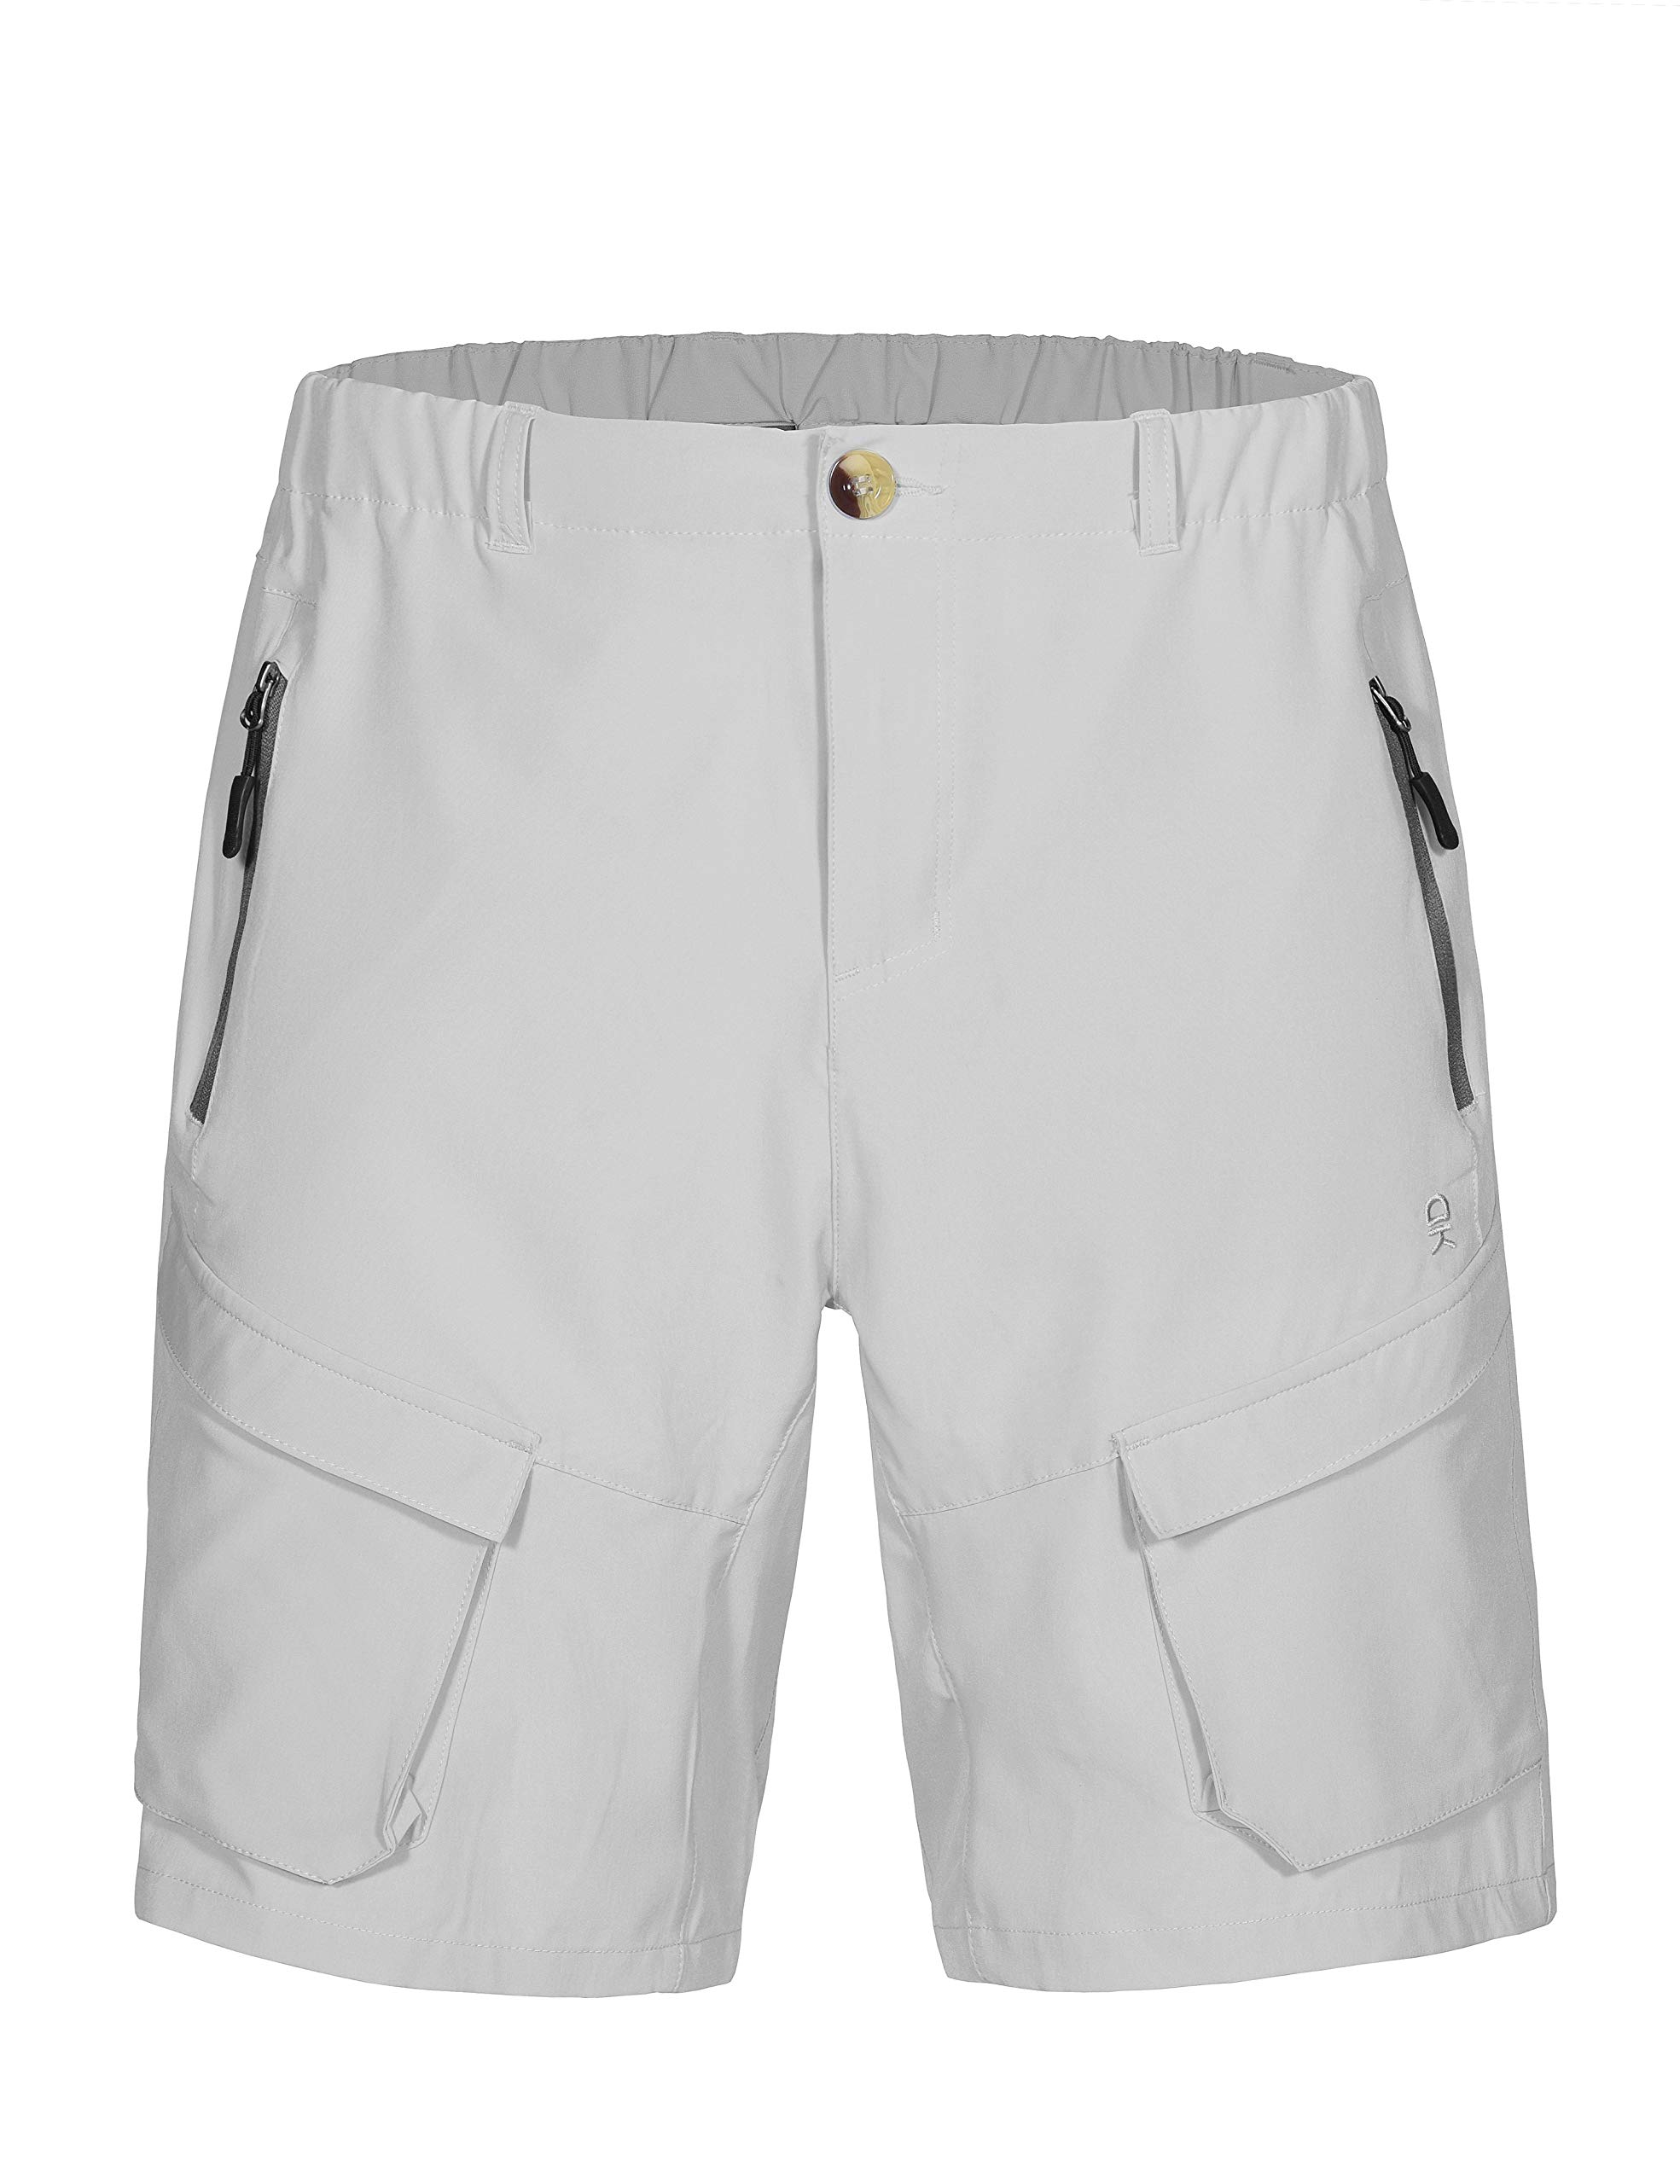 Little Donkey Andy Men's Stretch Quick Dry Cargo Shorts for Hiking, Camping, Travel Gray Size M by Little Donkey Andy